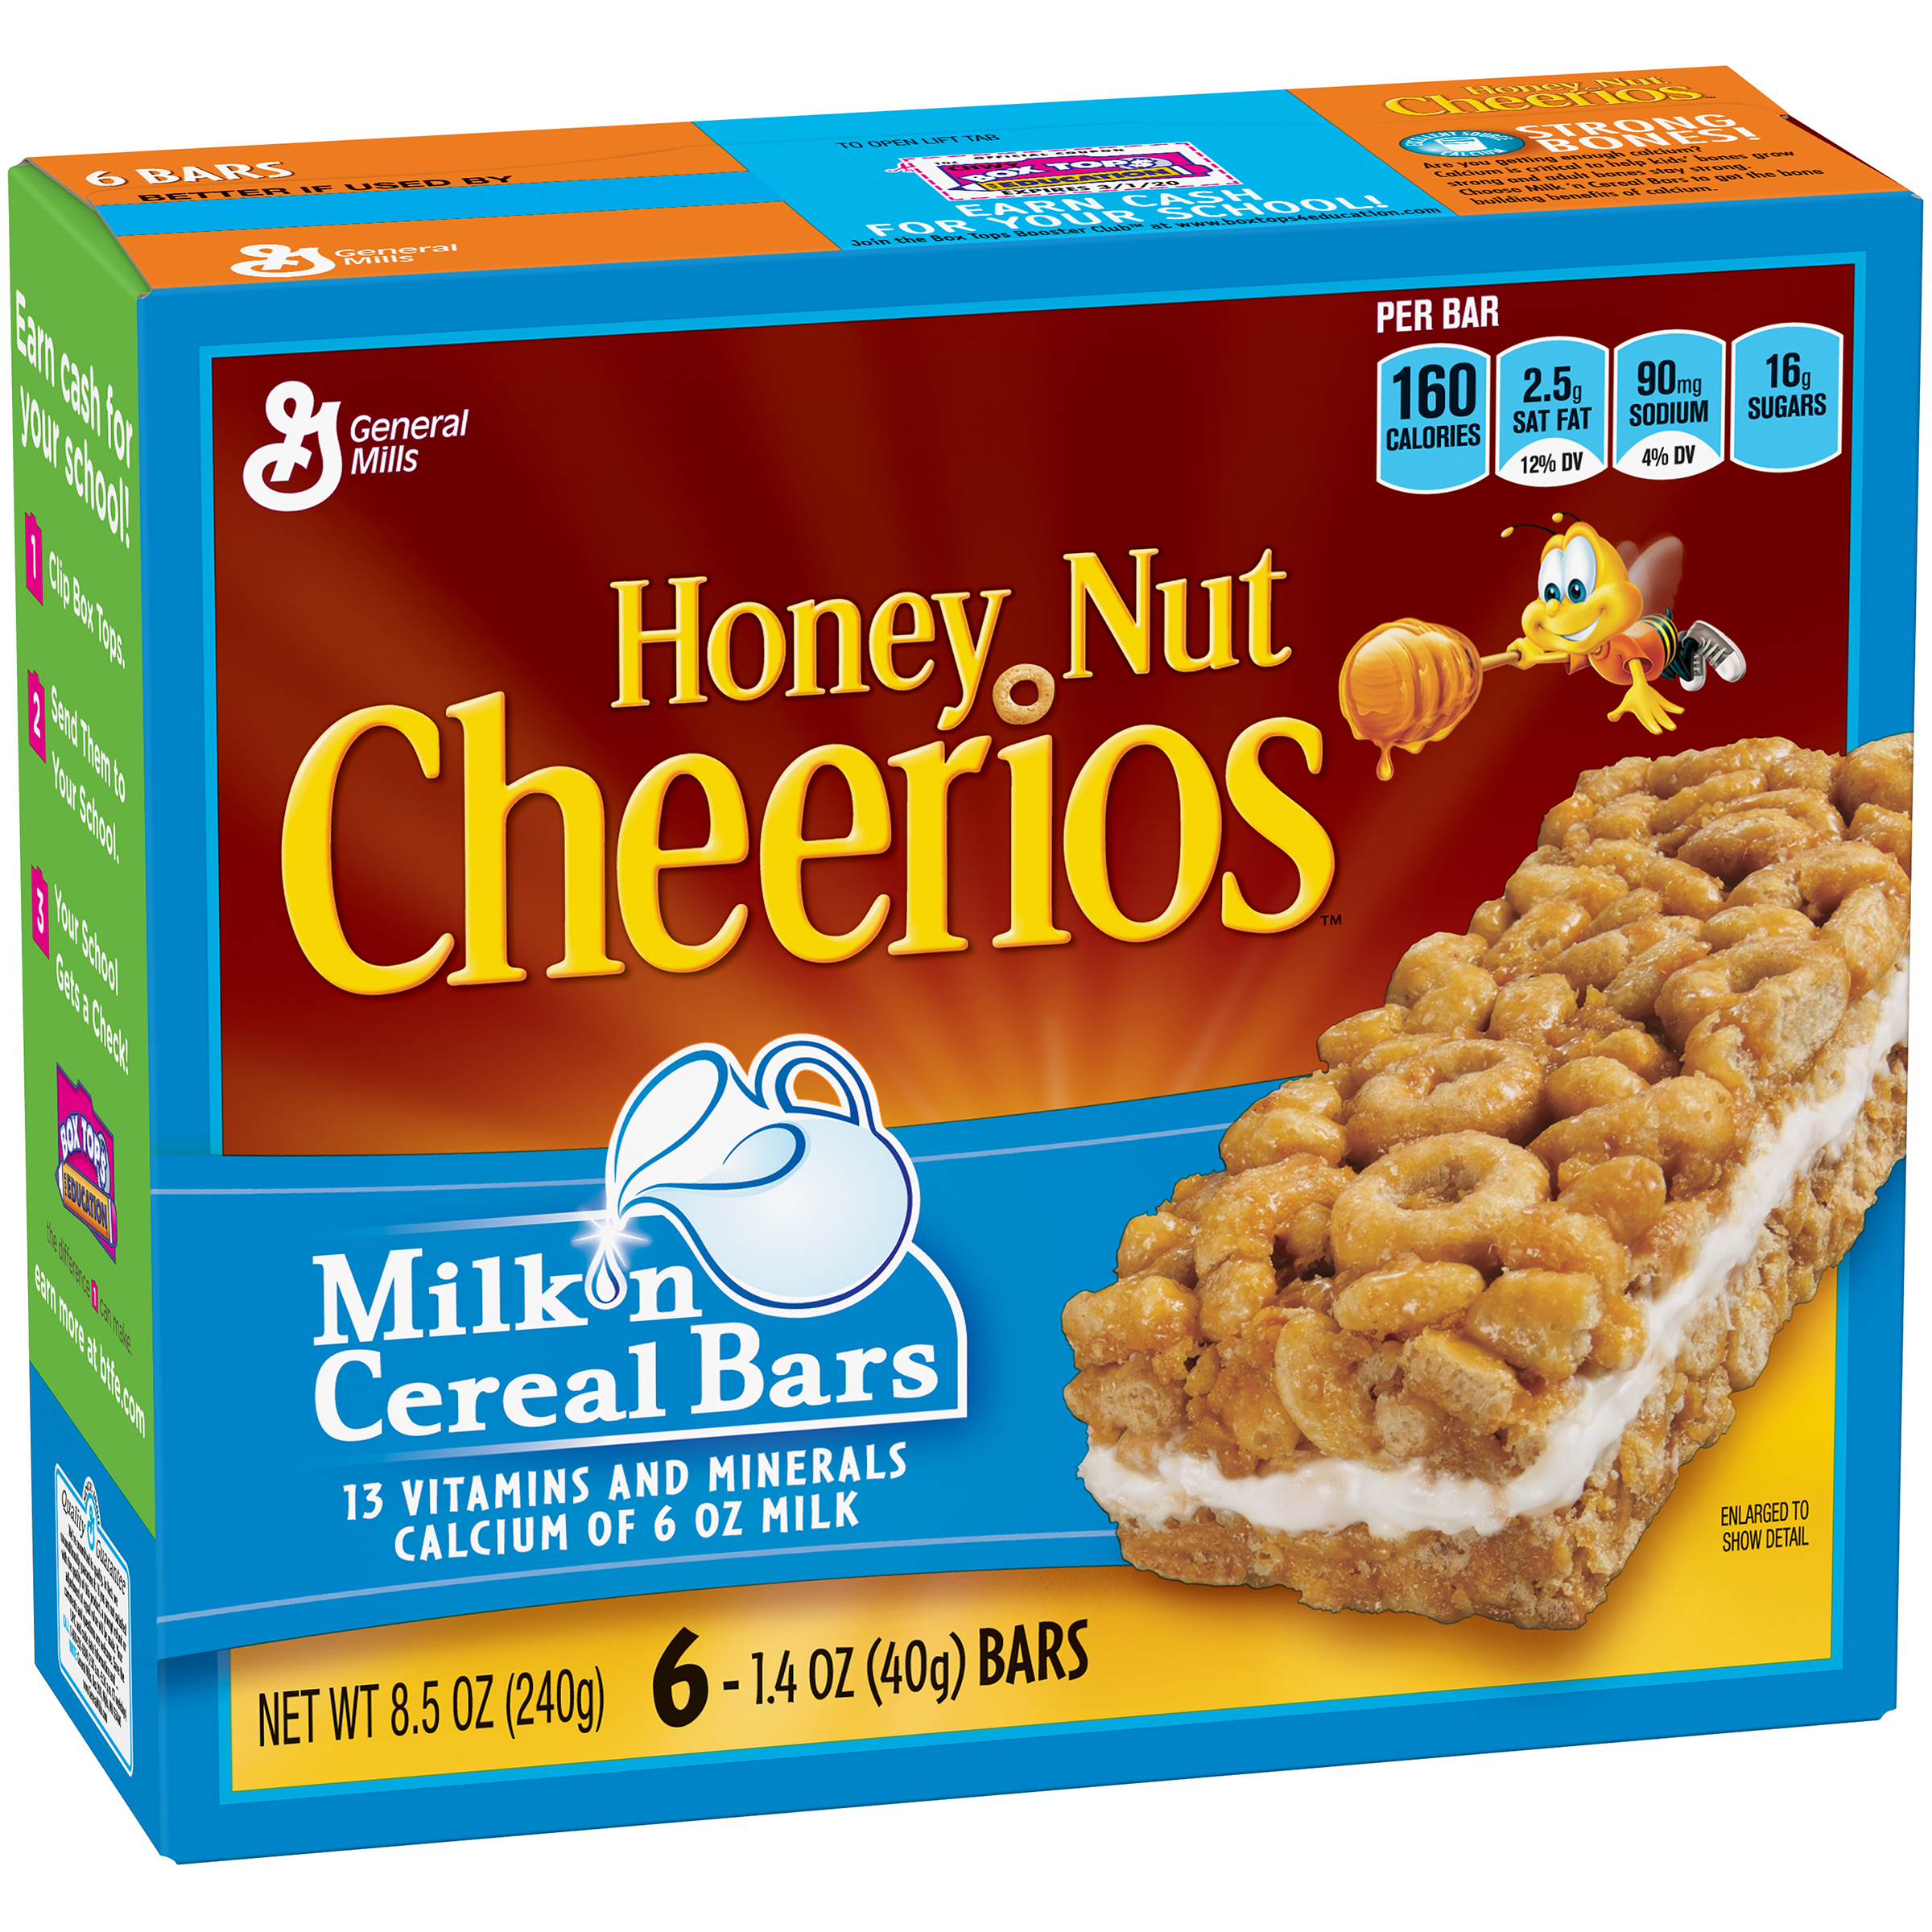 Honey Nut Cheerios��� Milk 'n Cereal Bars 6 ct Box